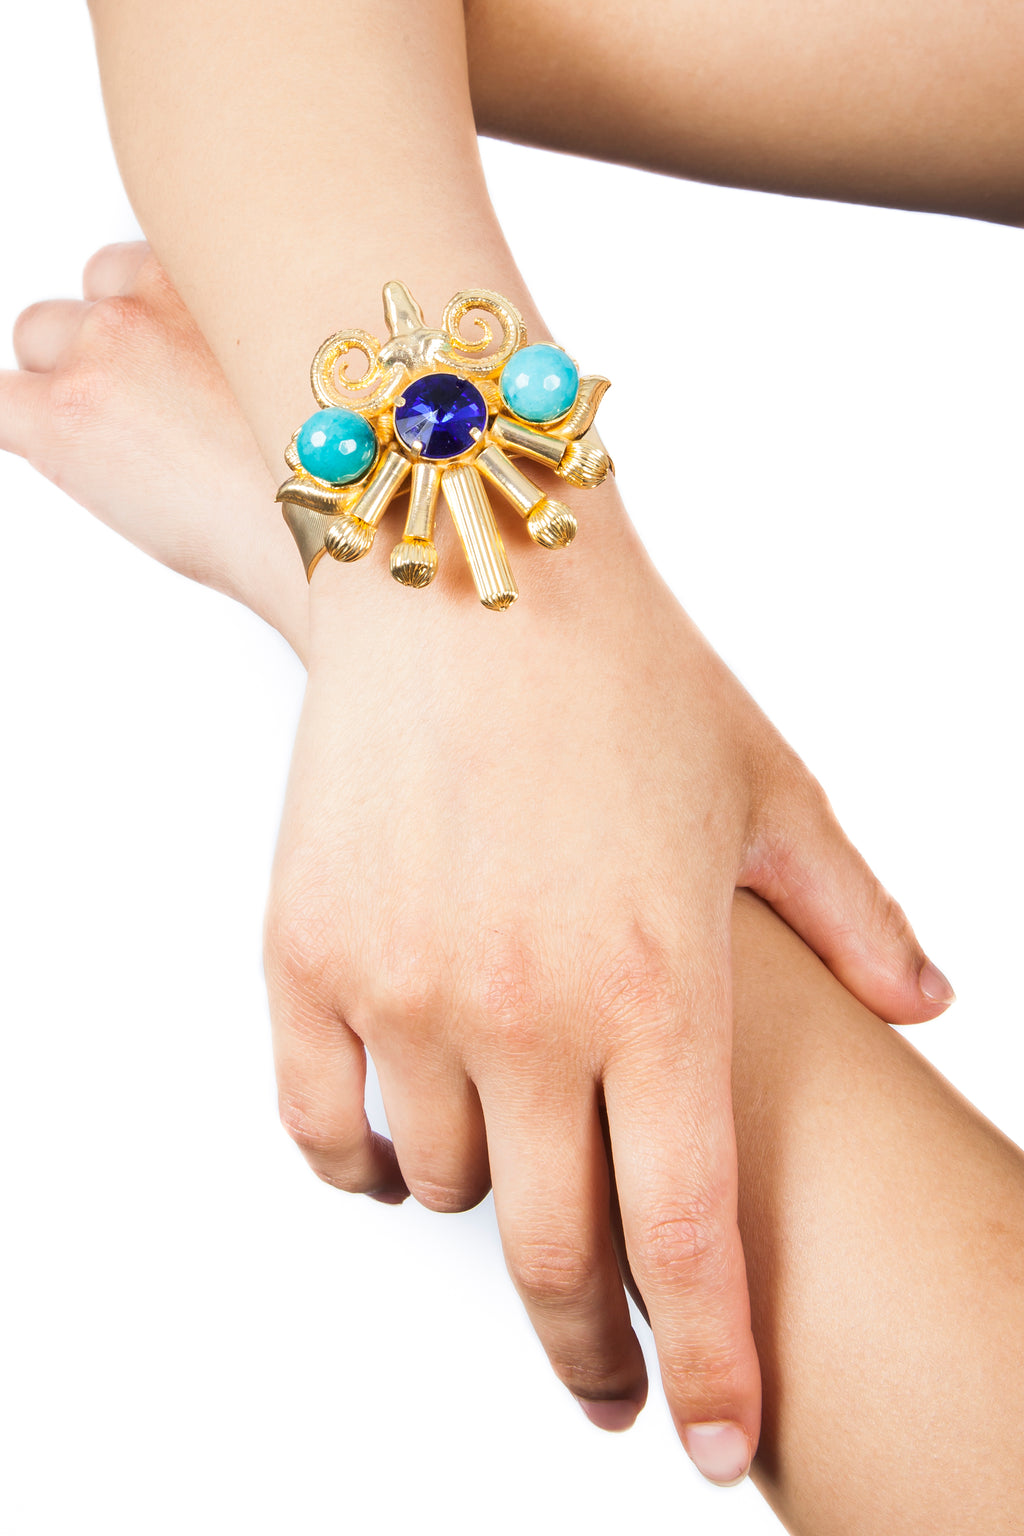 Valliyan India Jewelry Ram Head Bracelet